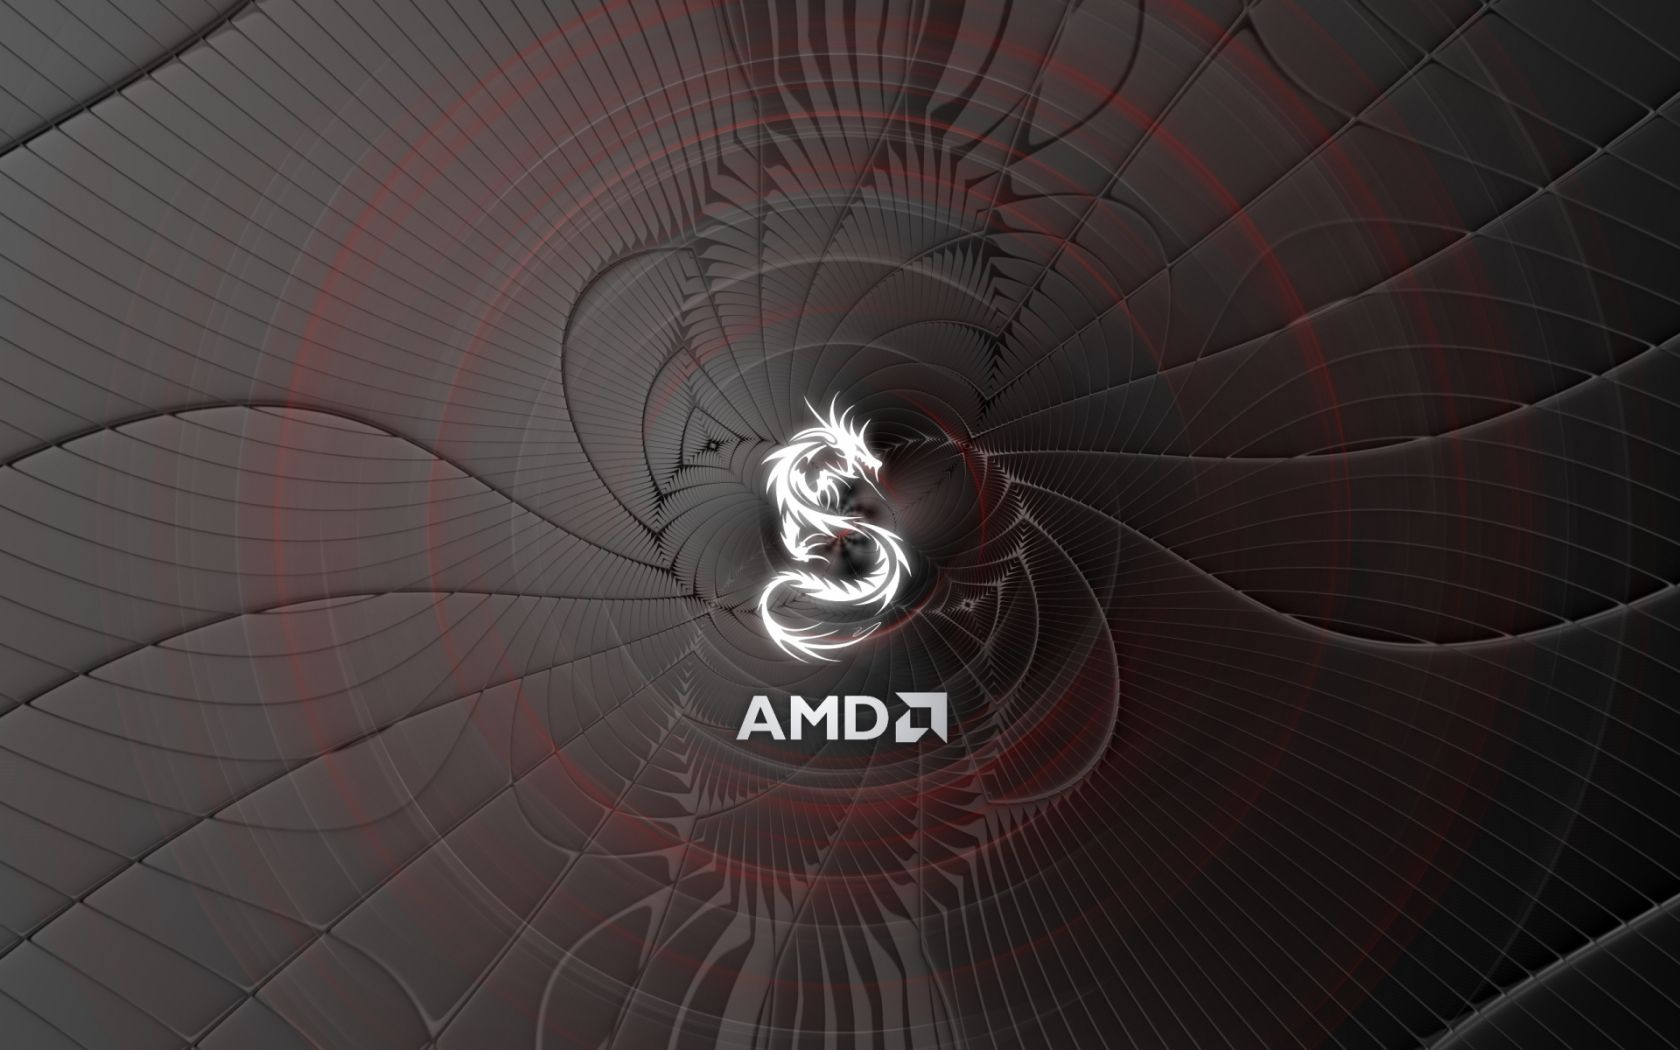 1680x1050 AMD Wallpaper and Background Image | 1680x1050 | ID:75389 ...